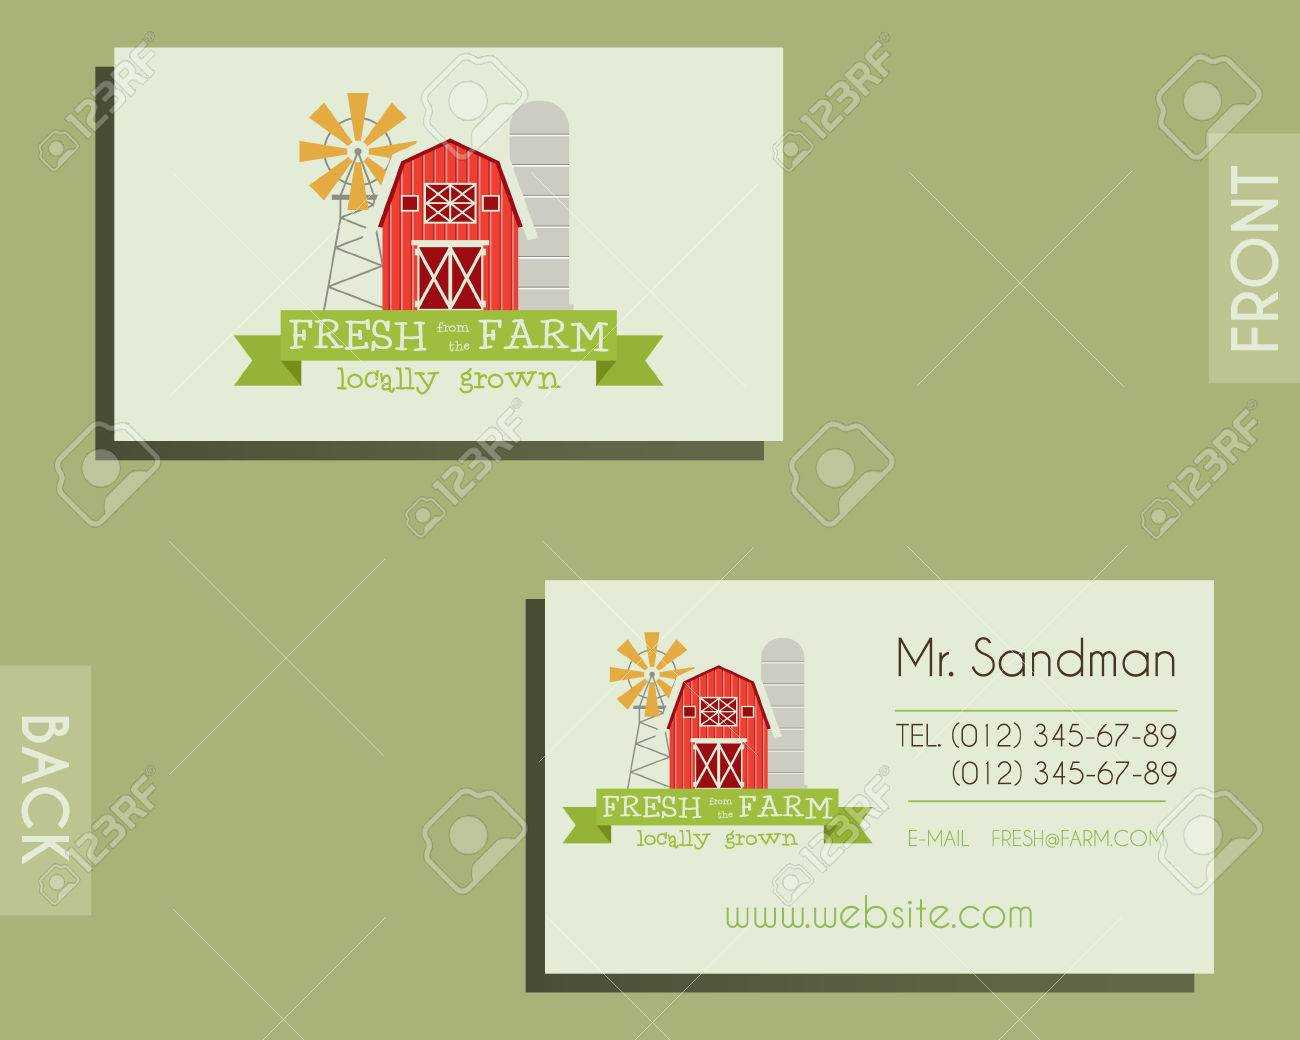 Eco, Organic Visiting Card Template. For Natural Shop, Farm Products And  Other Bio, Organic Business. Ecology Theme. Eco Design. Vector Illustration With Bio Card Template